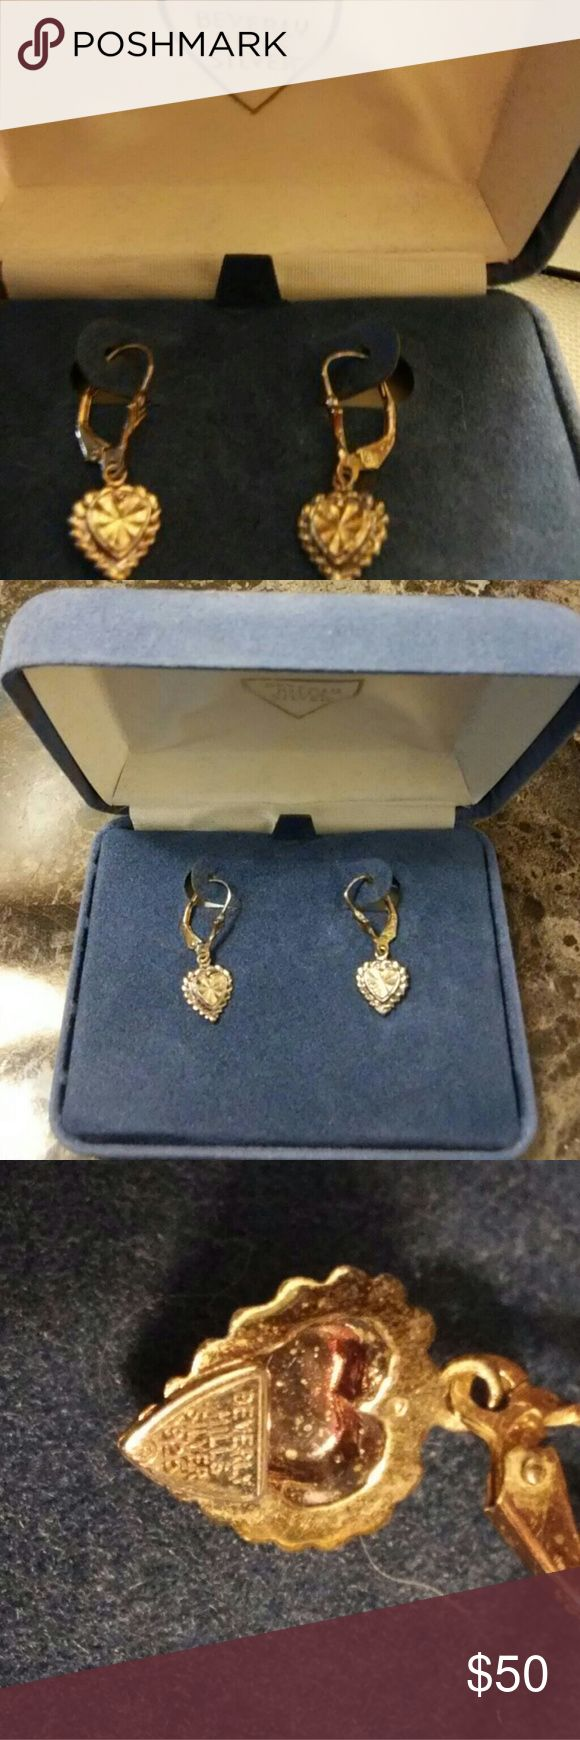 """Vtg Beverly Hills .925 Silver Heart Earrings Vintage pair of Beverly Hills .925 Sterling Silver Heart Earrings in original box.  The dangling heart earrings have a lever style backing.  They have a pretty diamond cut design in the center of the heart.  These are stamped on the back to show maker and .925.  They measure approx 1/2"""" by 11/16"""" top to bottom.   They are in good vintage condition but do to show normal wear and toning due to use and age.   They include original box beverly hills…"""